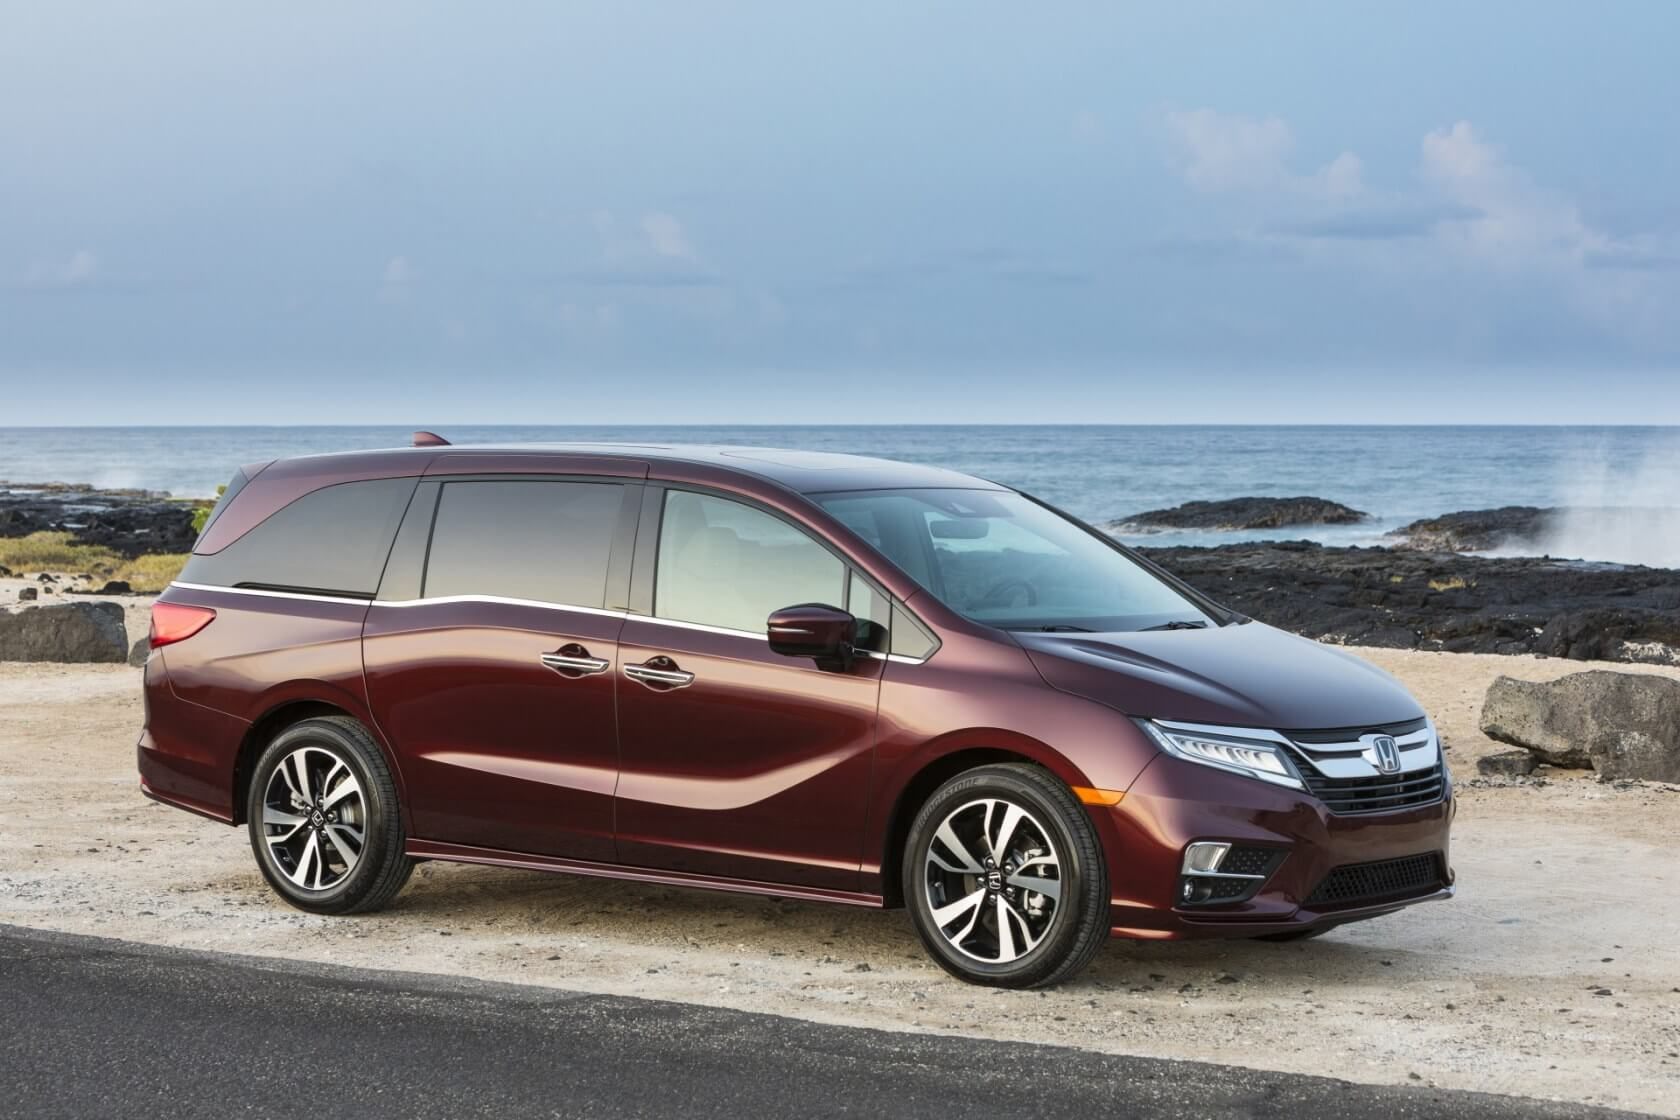 Honda is recalling 608,000 US vehicles due to software and hardware failures